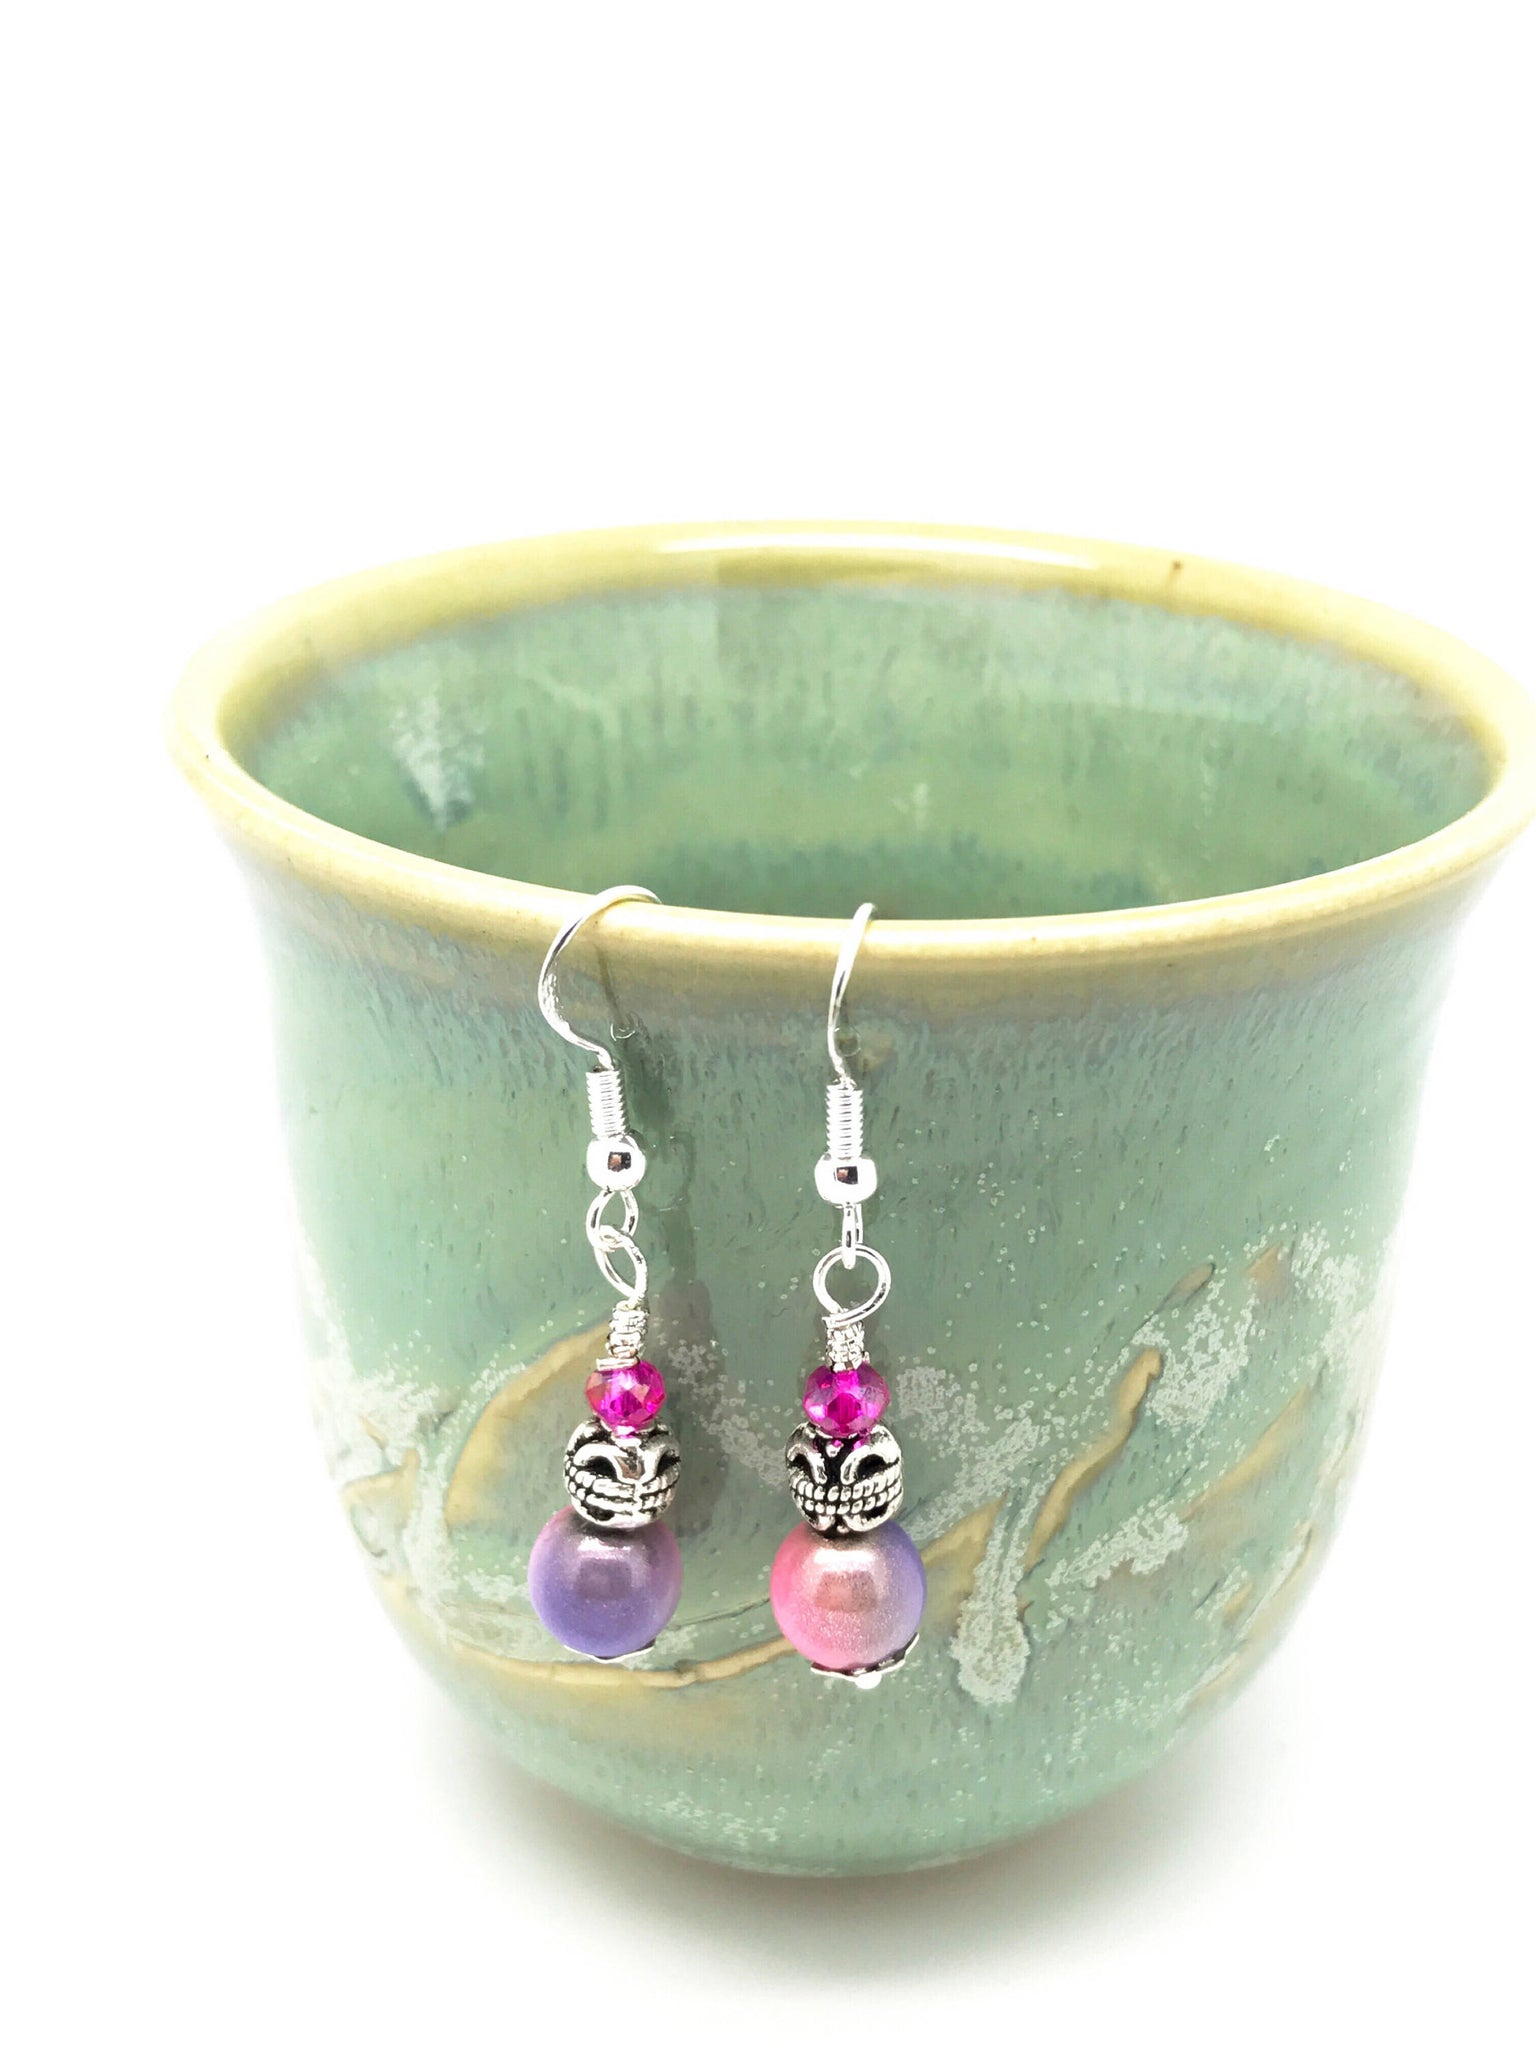 Bright Pink Irresistible Earrings -  Pink-Blue Shiny Earrings - Fashion Pink Earrings - Pretty Pink Earrings - Purple-Pink Earrings